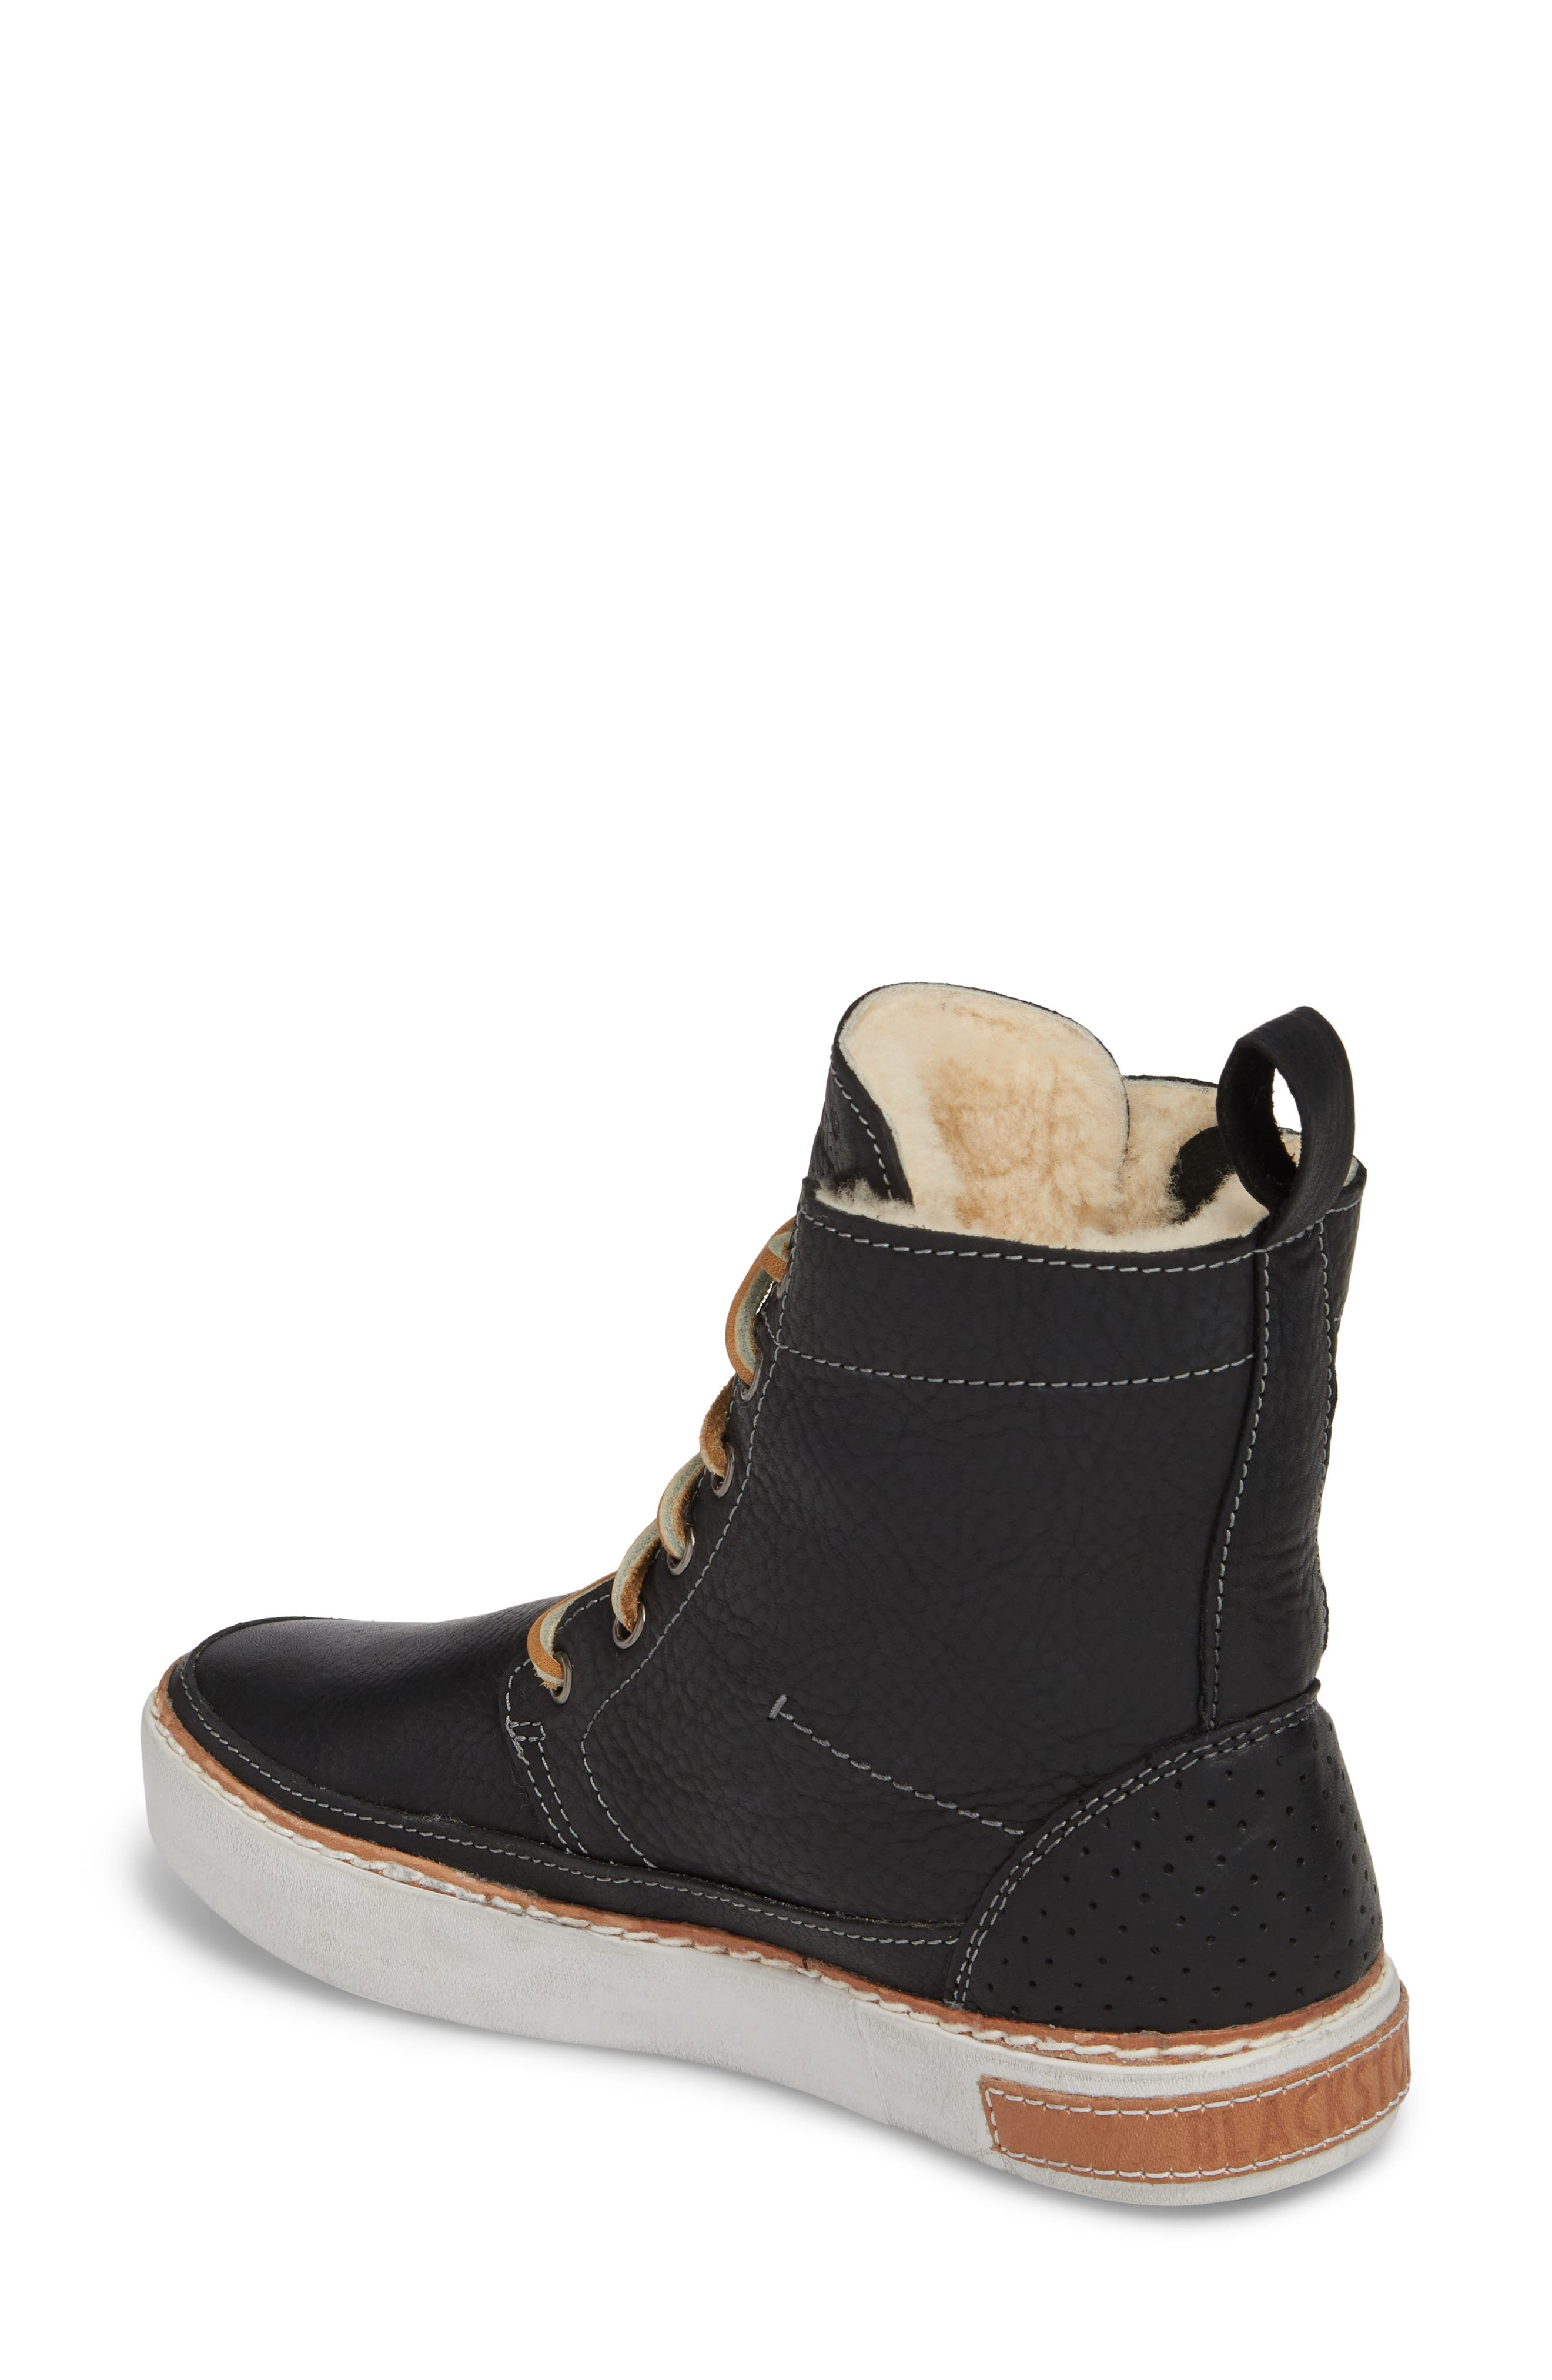 'CW96' Genuine Shearling Lined Sneaker Boot,                             Alternate thumbnail 2, color,                             BLACK LEATHER